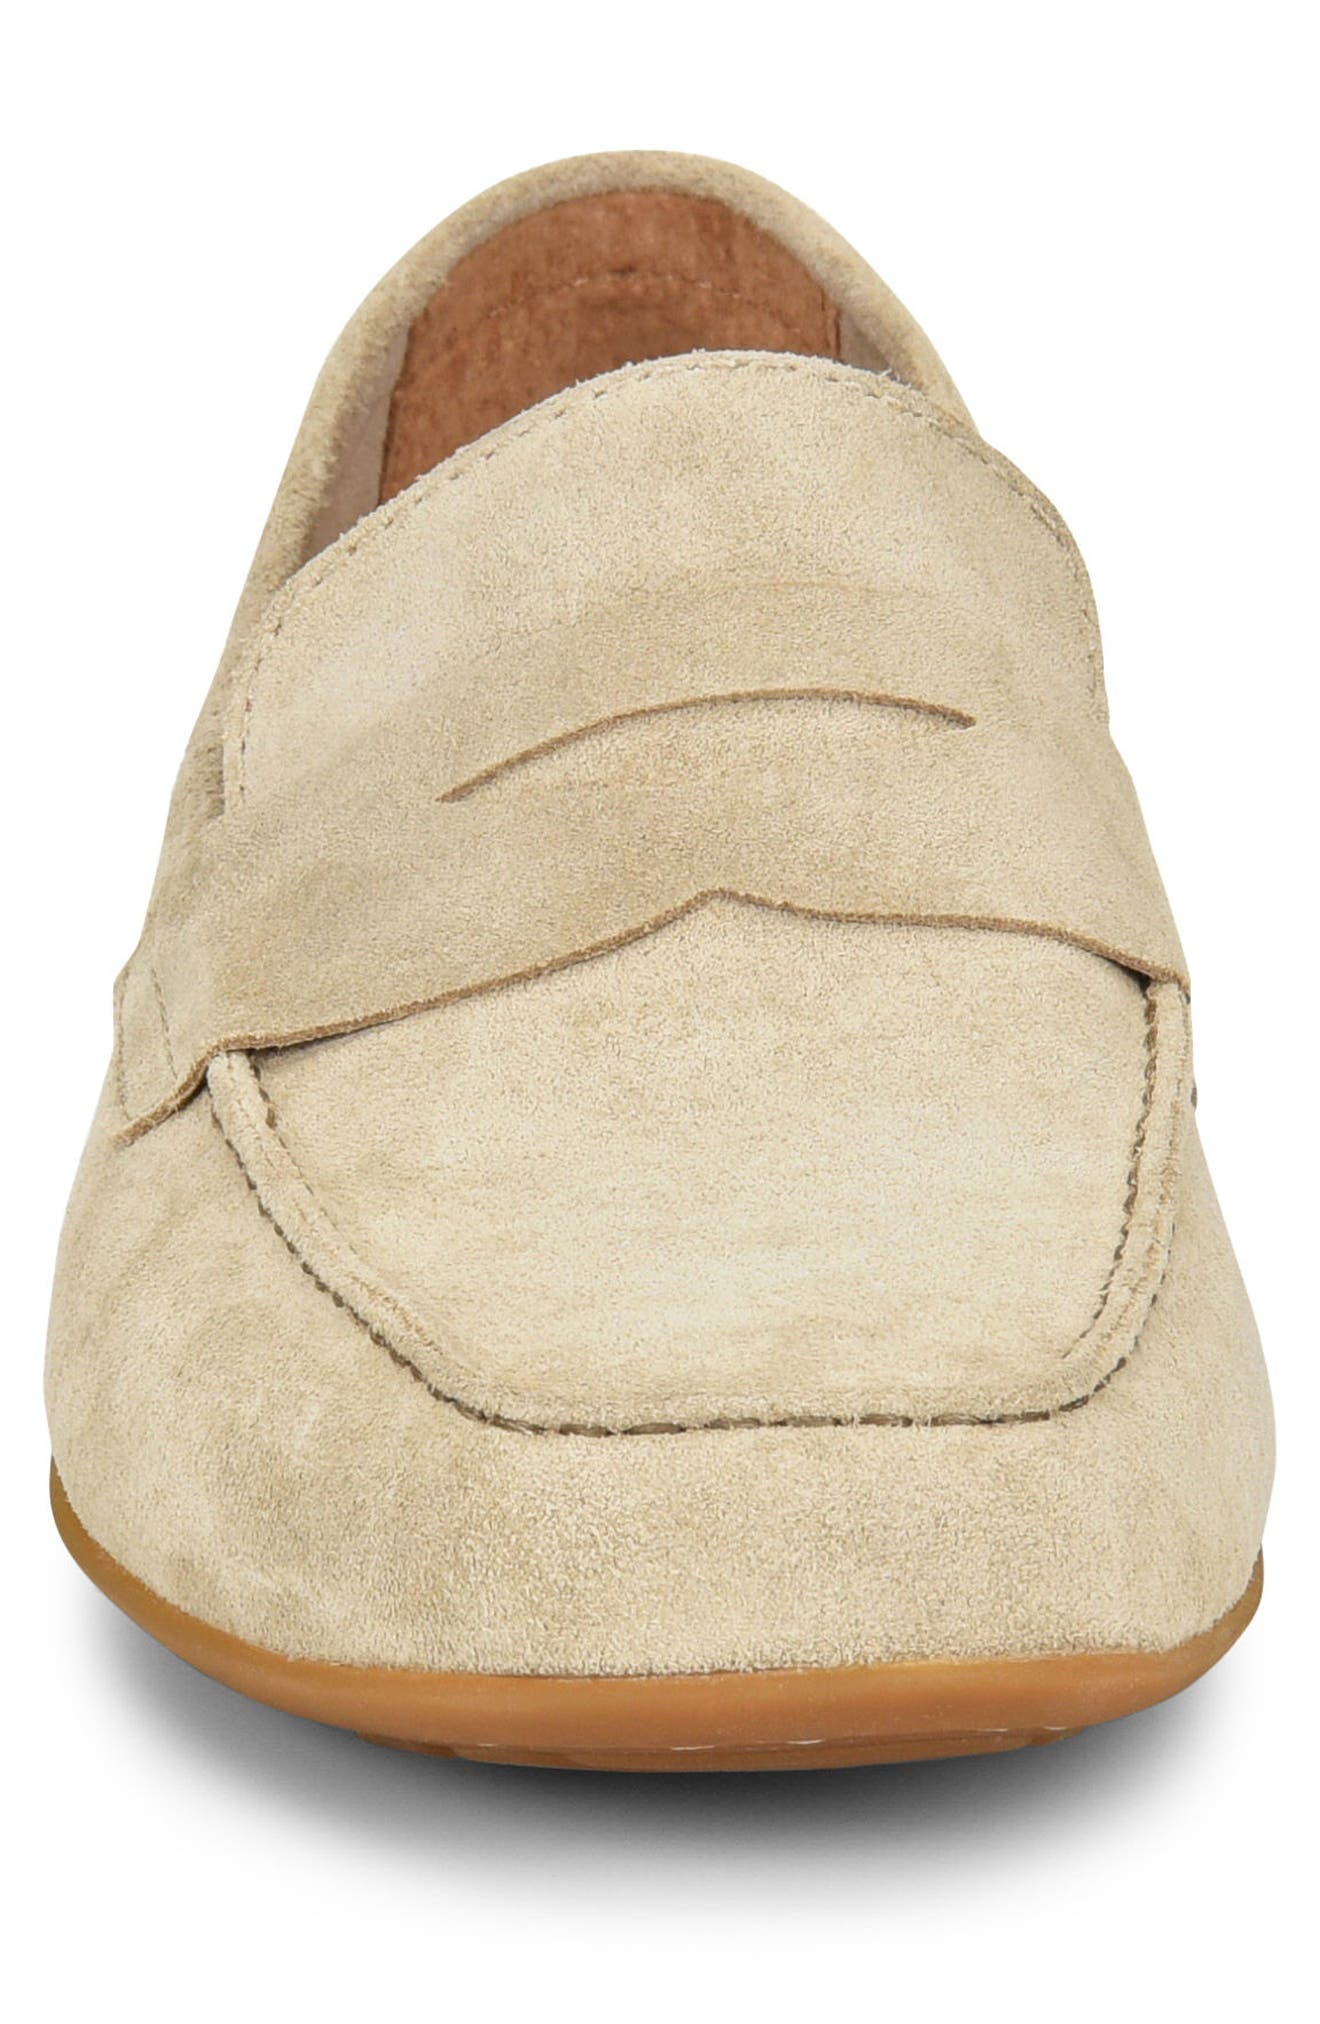 'Dave' Penny Loafer,                             Alternate thumbnail 4, color,                             Natural Suede